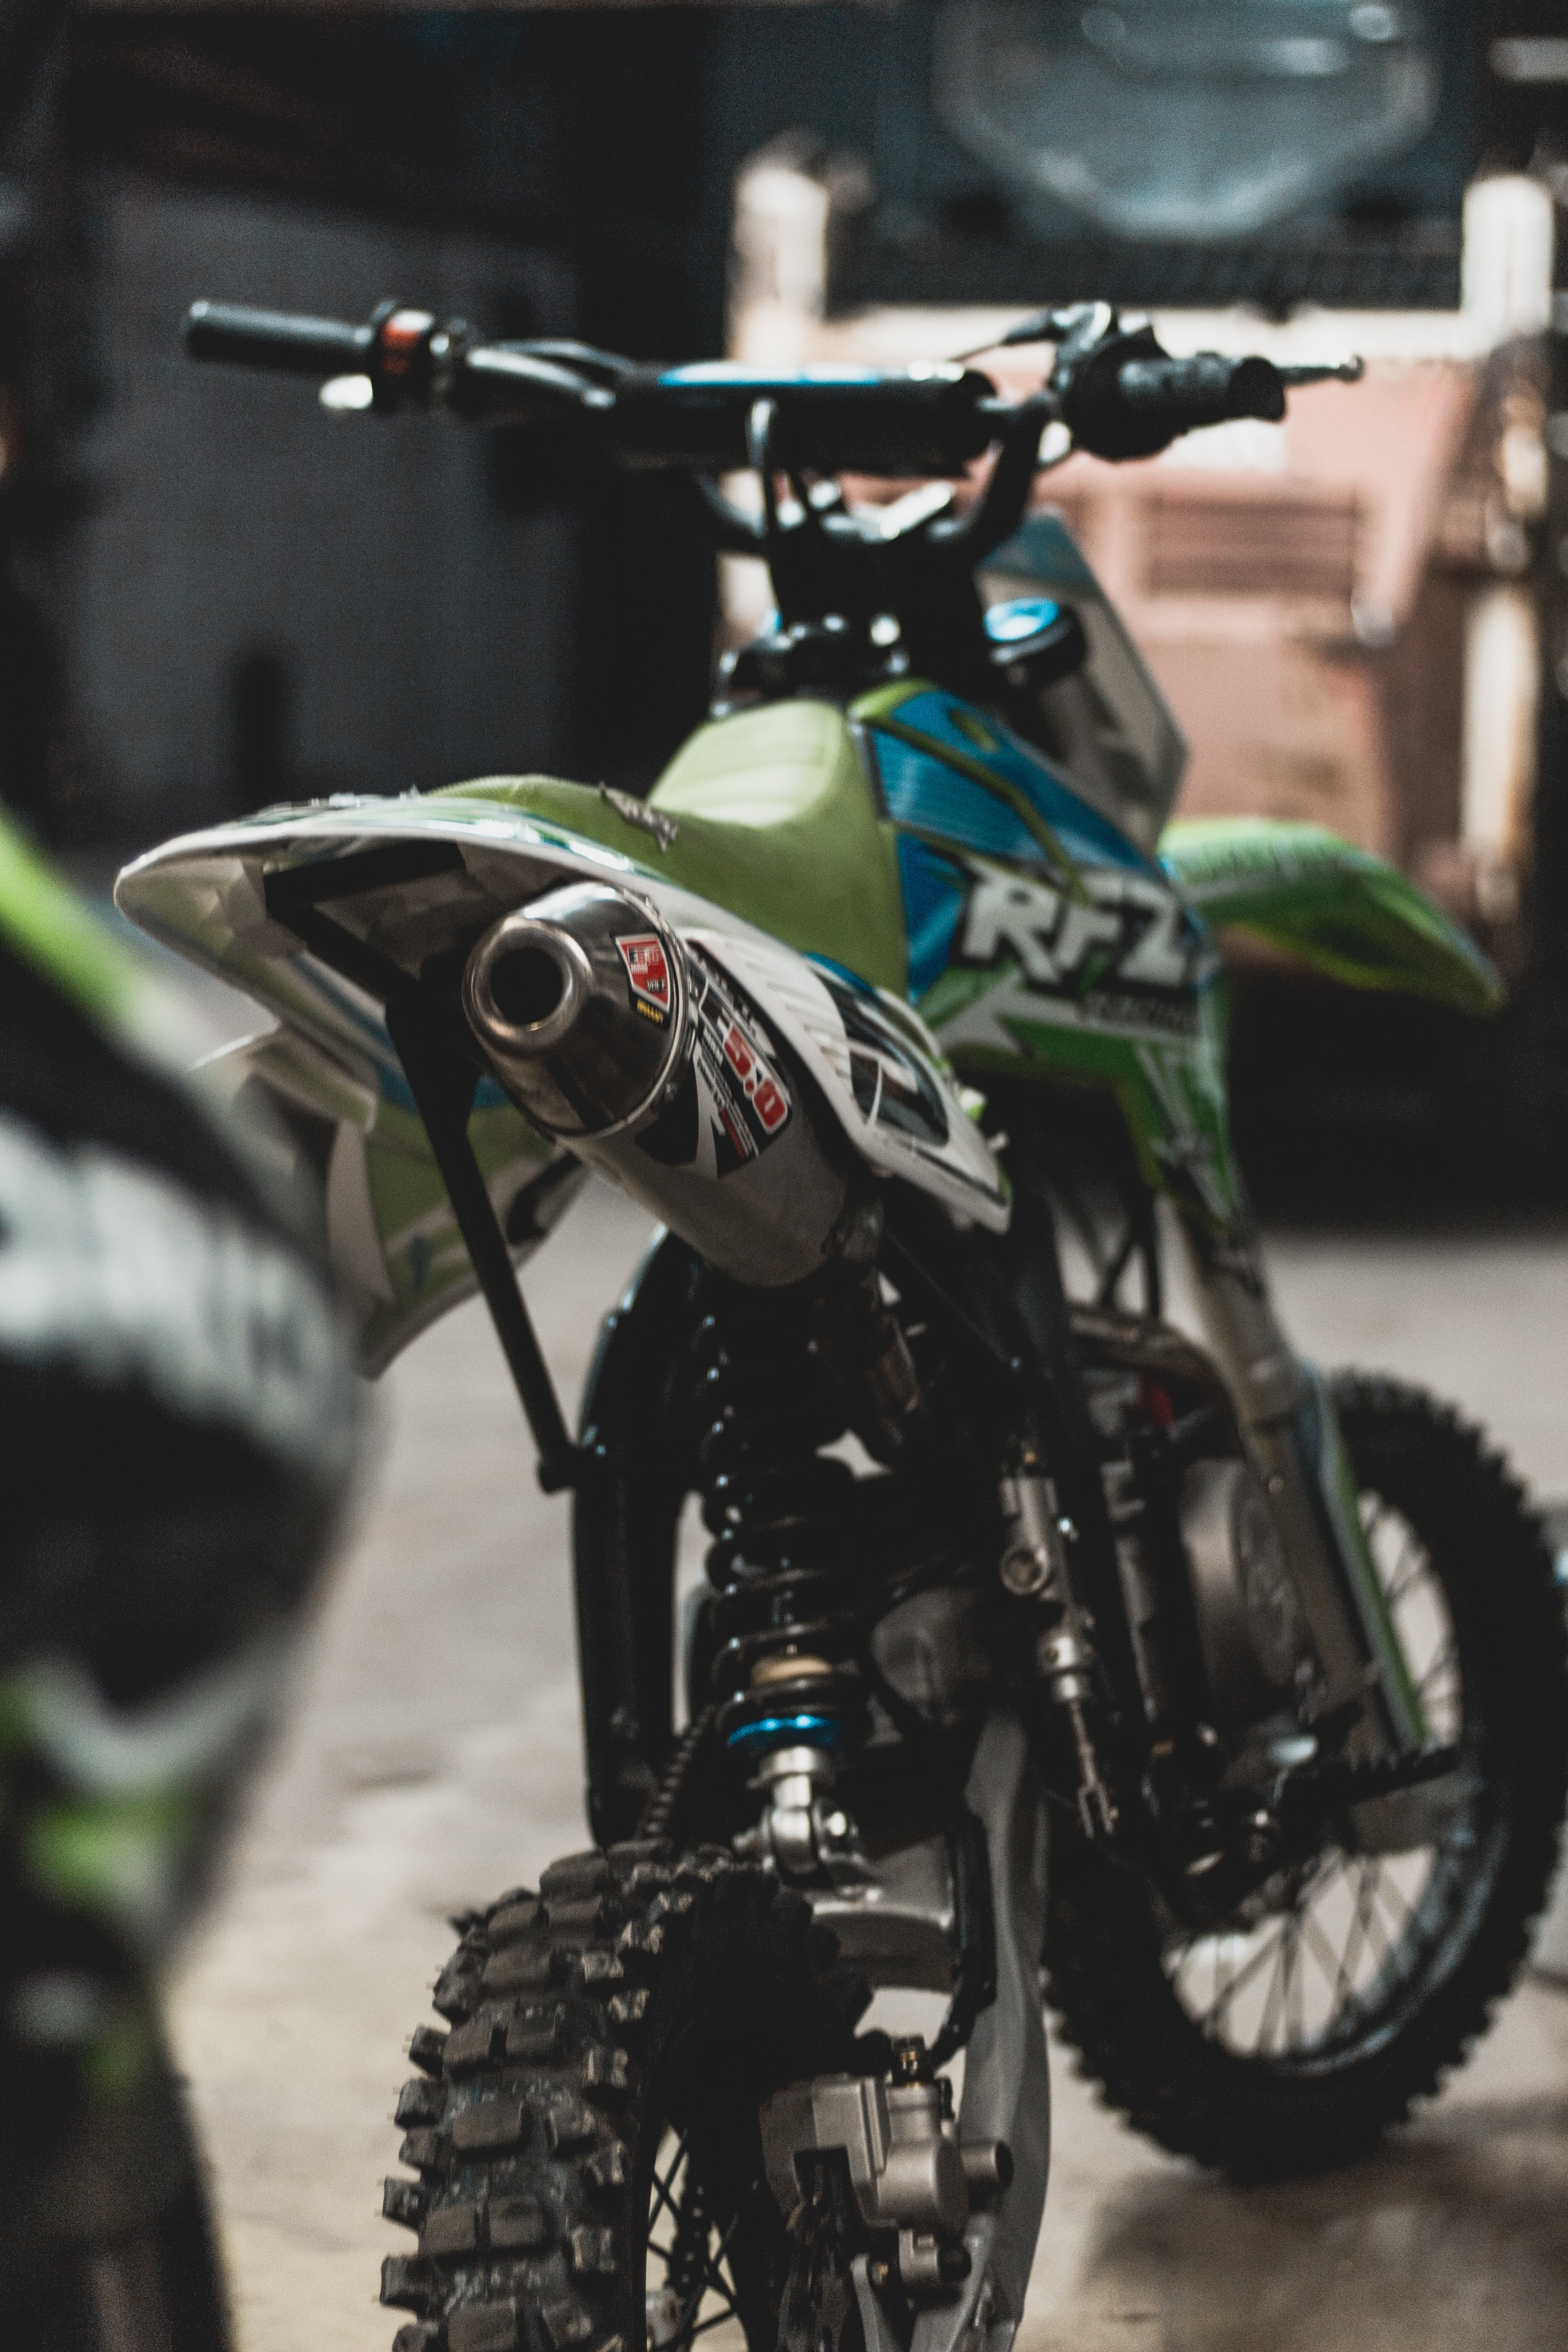 green, blue, and white RFZ dirt bike on gray surface